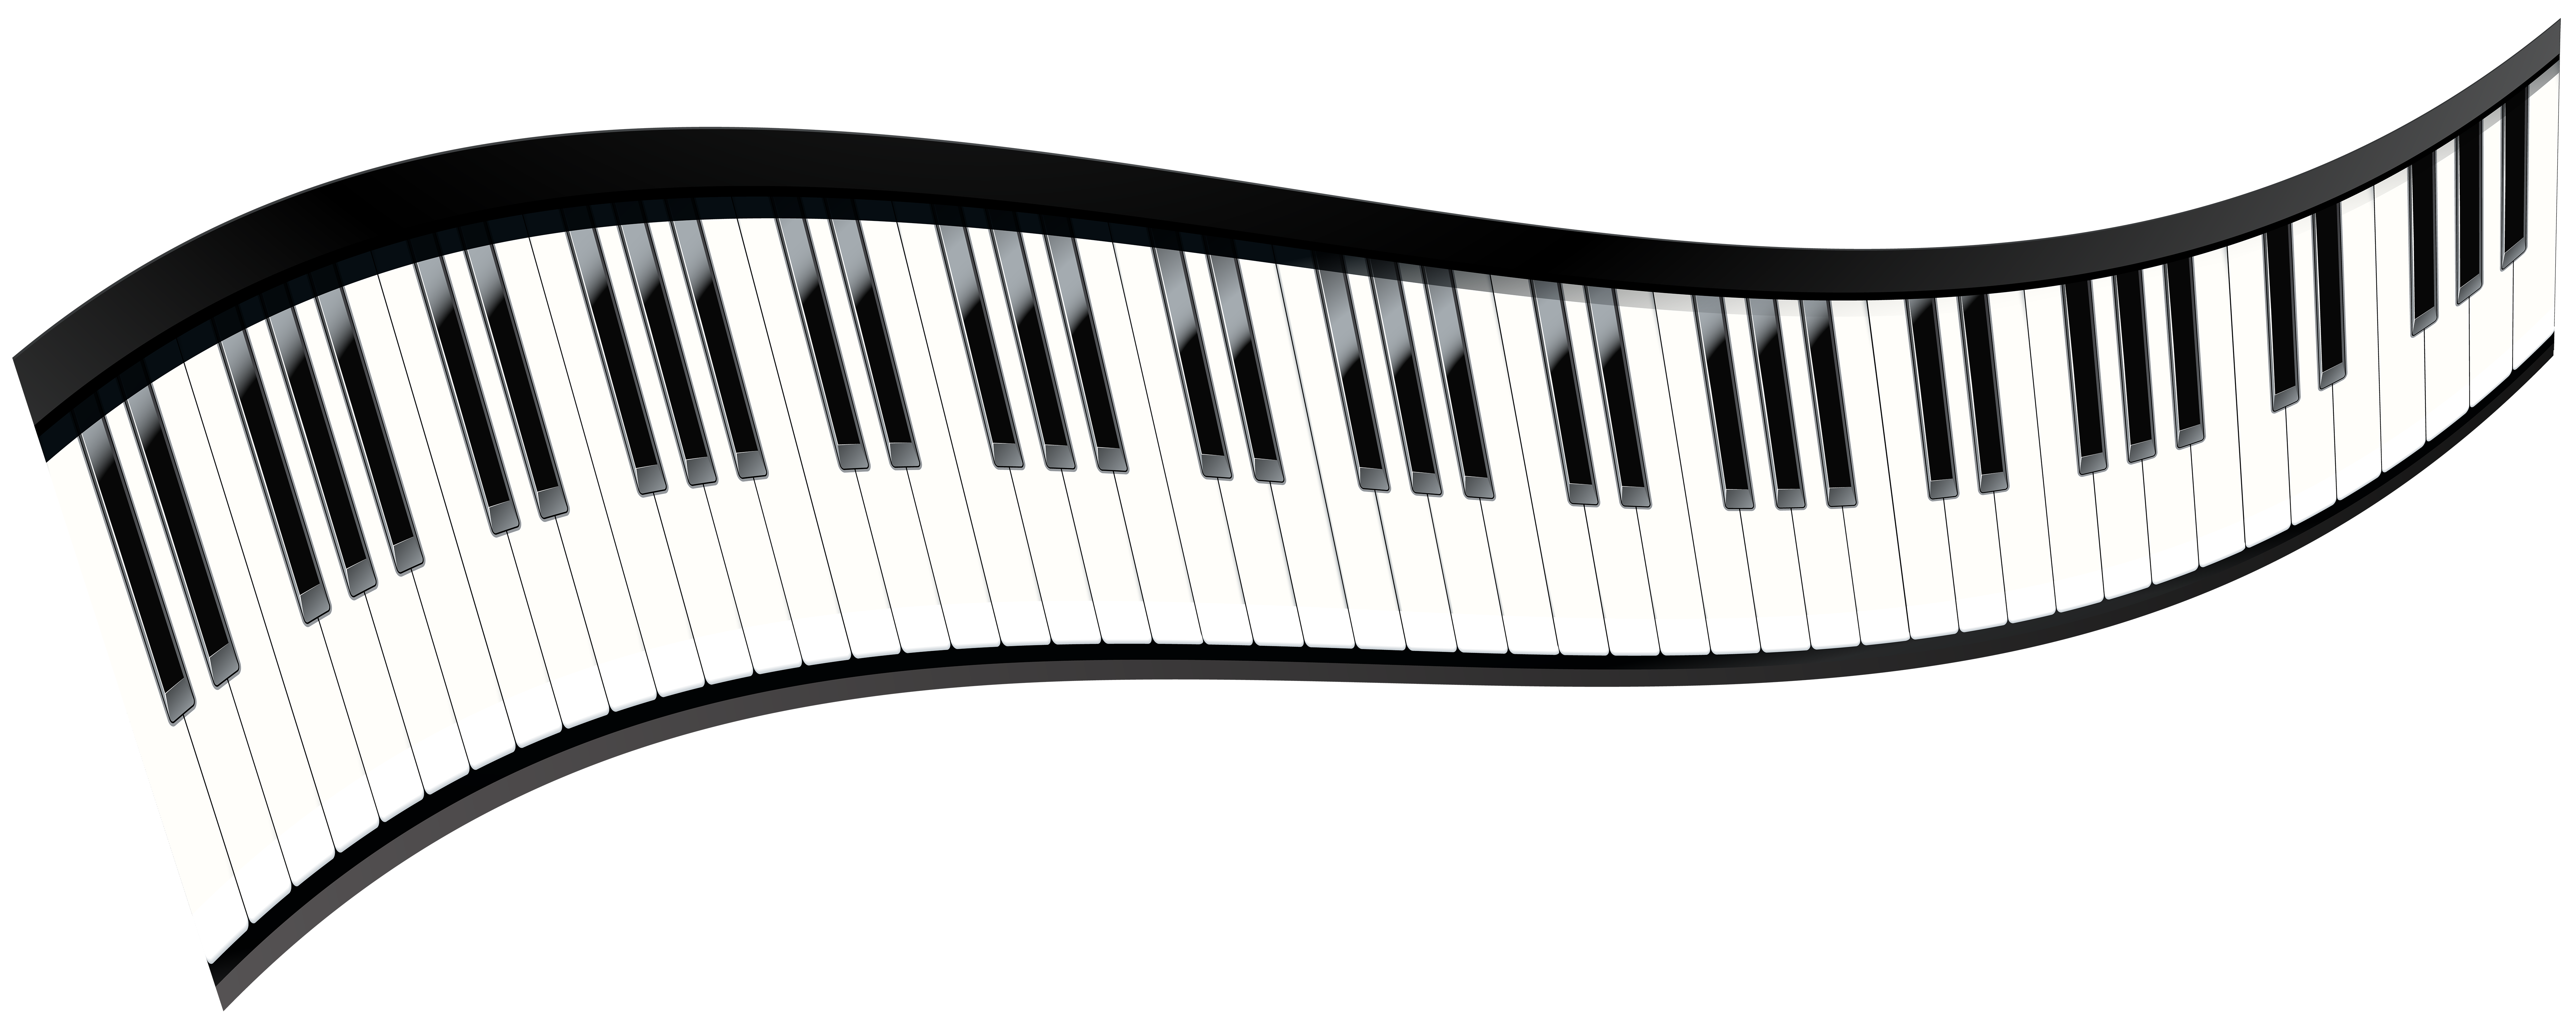 Piano Ladder Png Clip Art Gallery Yopriceville High Quality Images And Transparent Png Free Clipart Clip Art Free Clip Art Spring Wall Art